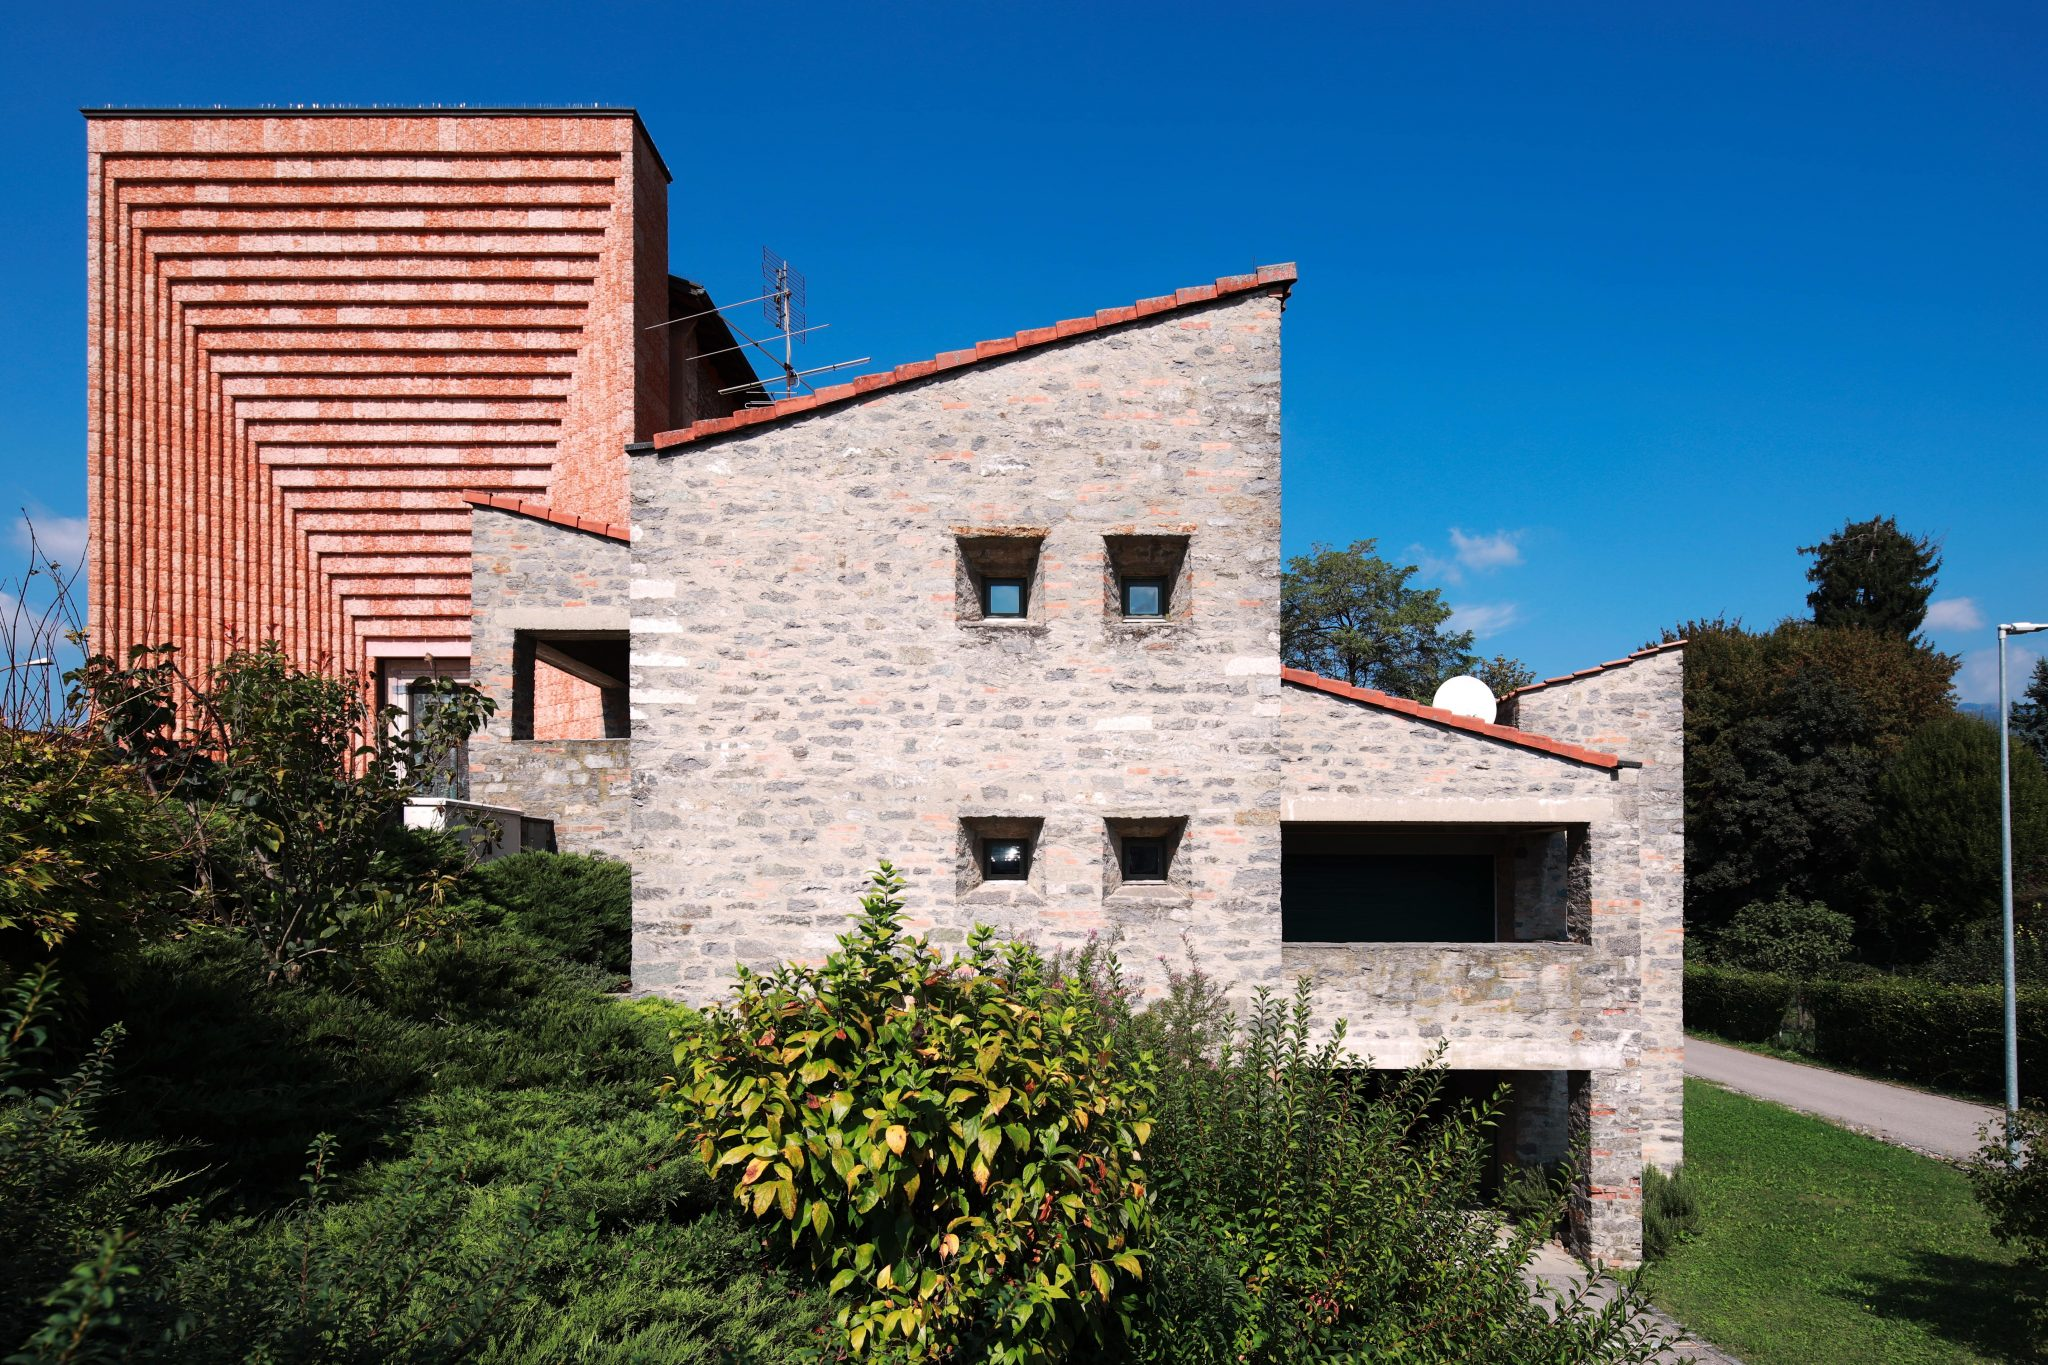 ماریو بوتا First construction of Mario Botta 1961–1963. Parish house in Genestrerio